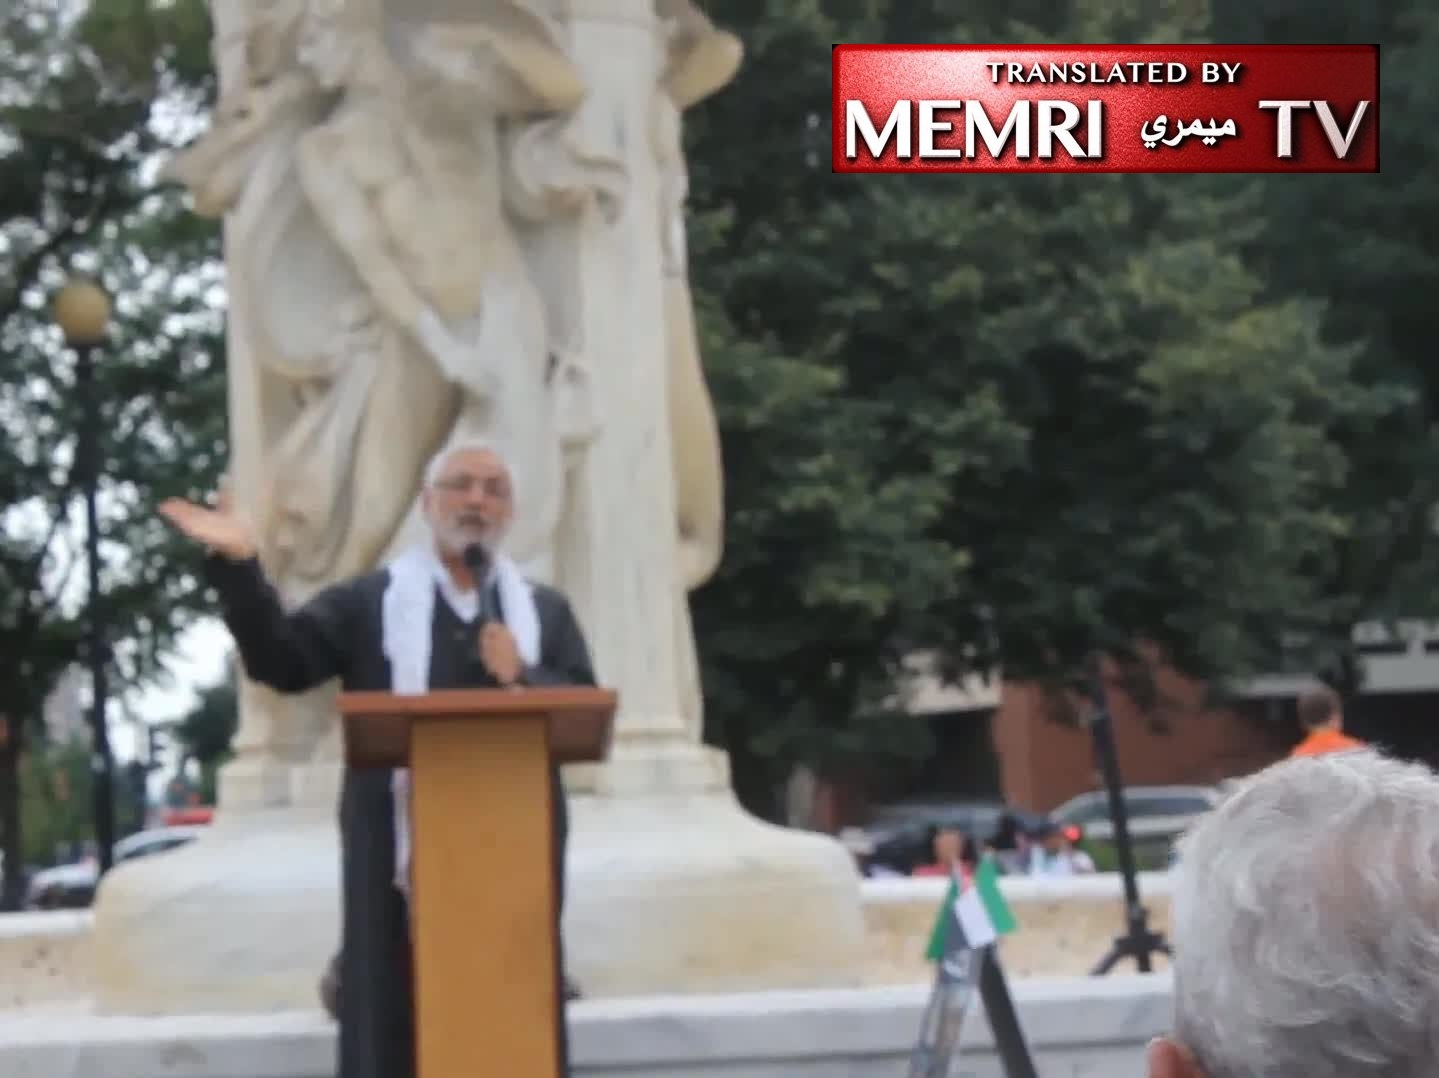 Al-Quds Day Sermon by Imam Muhammad Al Asi in Washington D.C.: The Zionist Colonialist Force Must Be Dislodged, If Necessary with Non-Peaceful Means